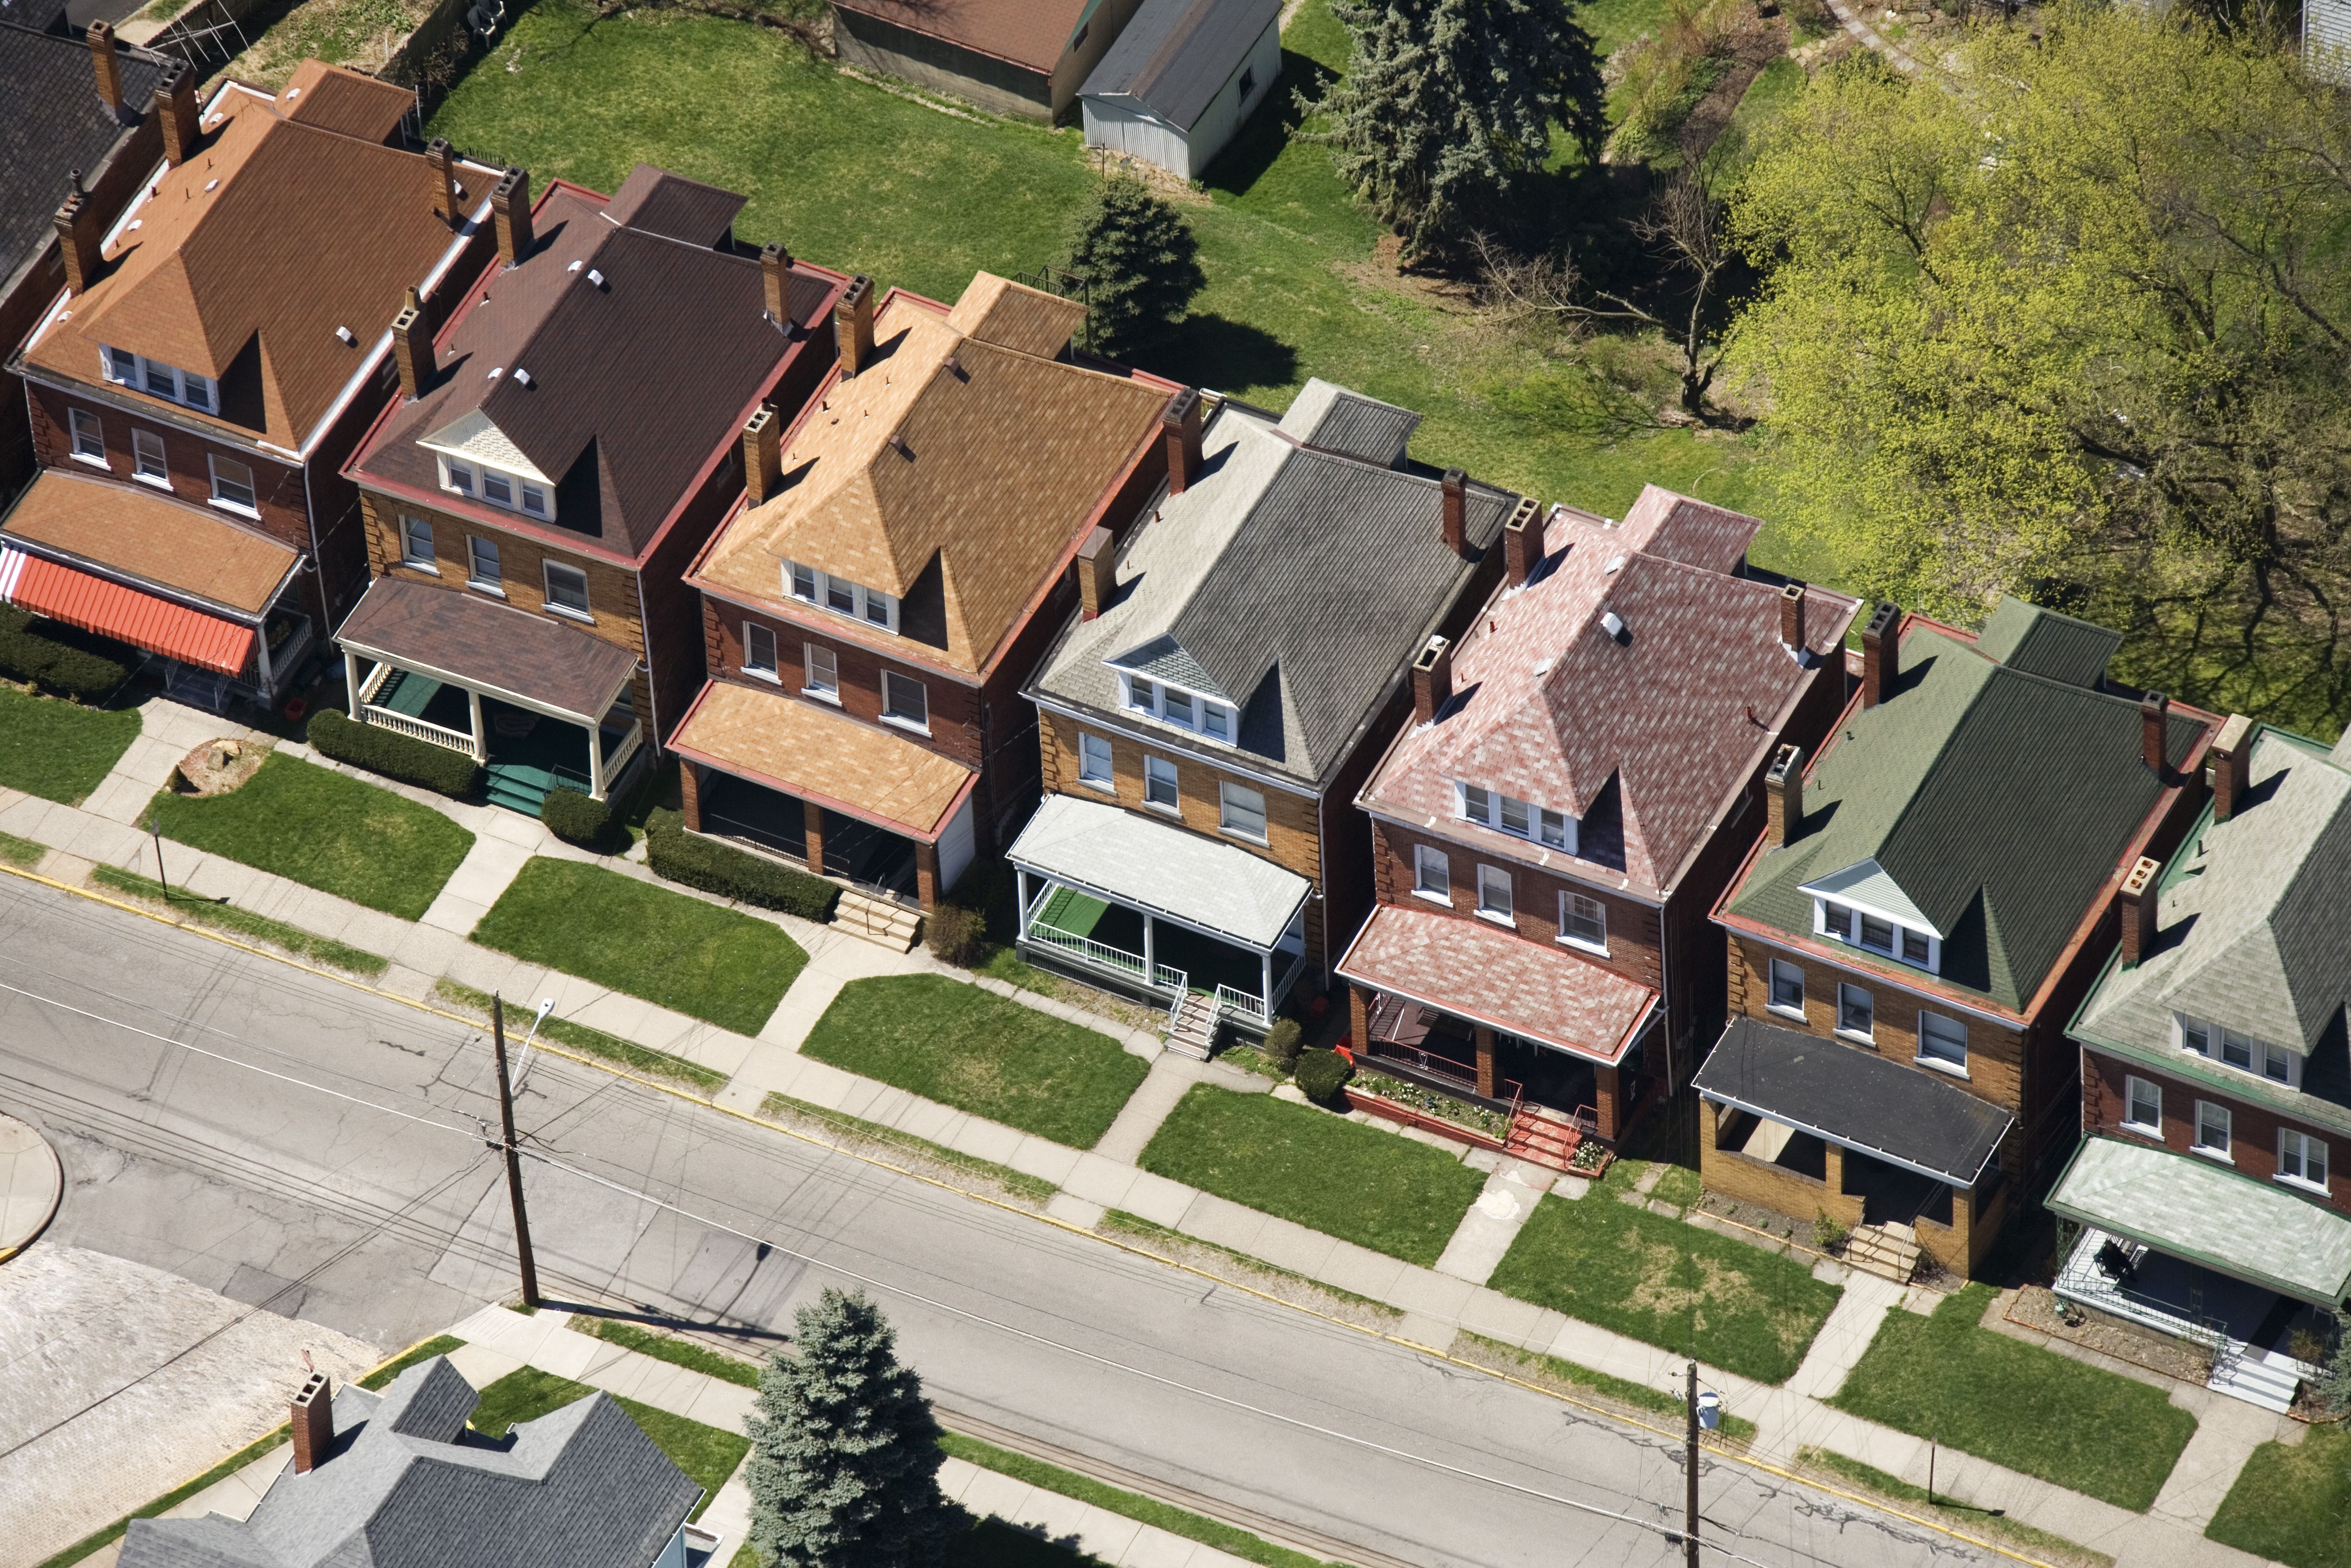 Row of identical houses